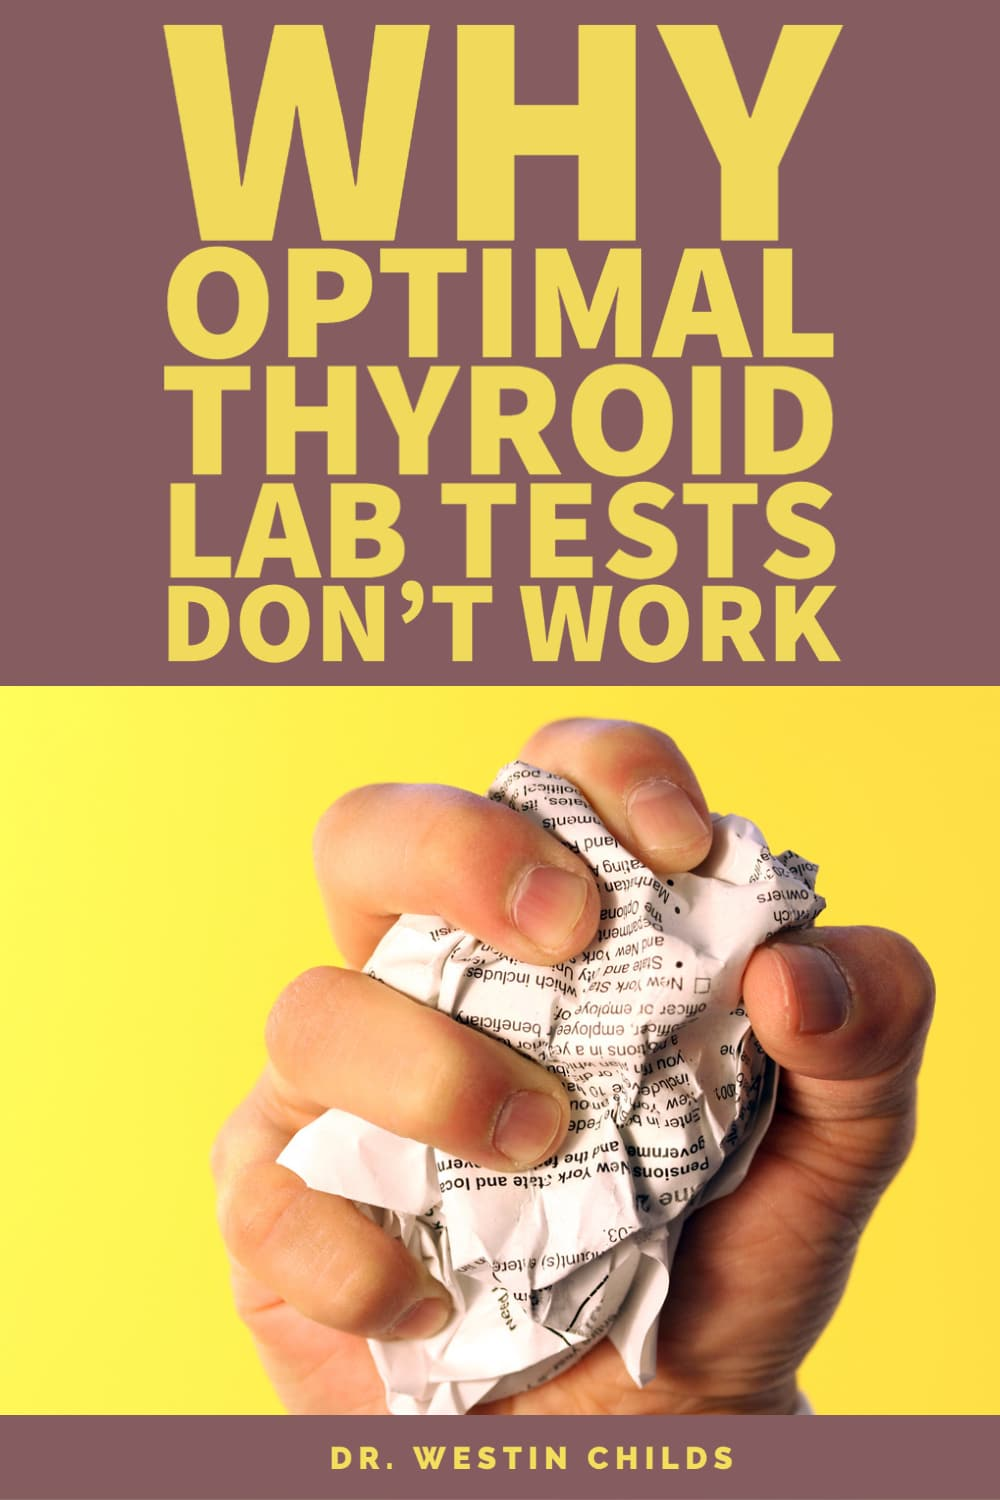 why optimal thyroid lab tests don't work